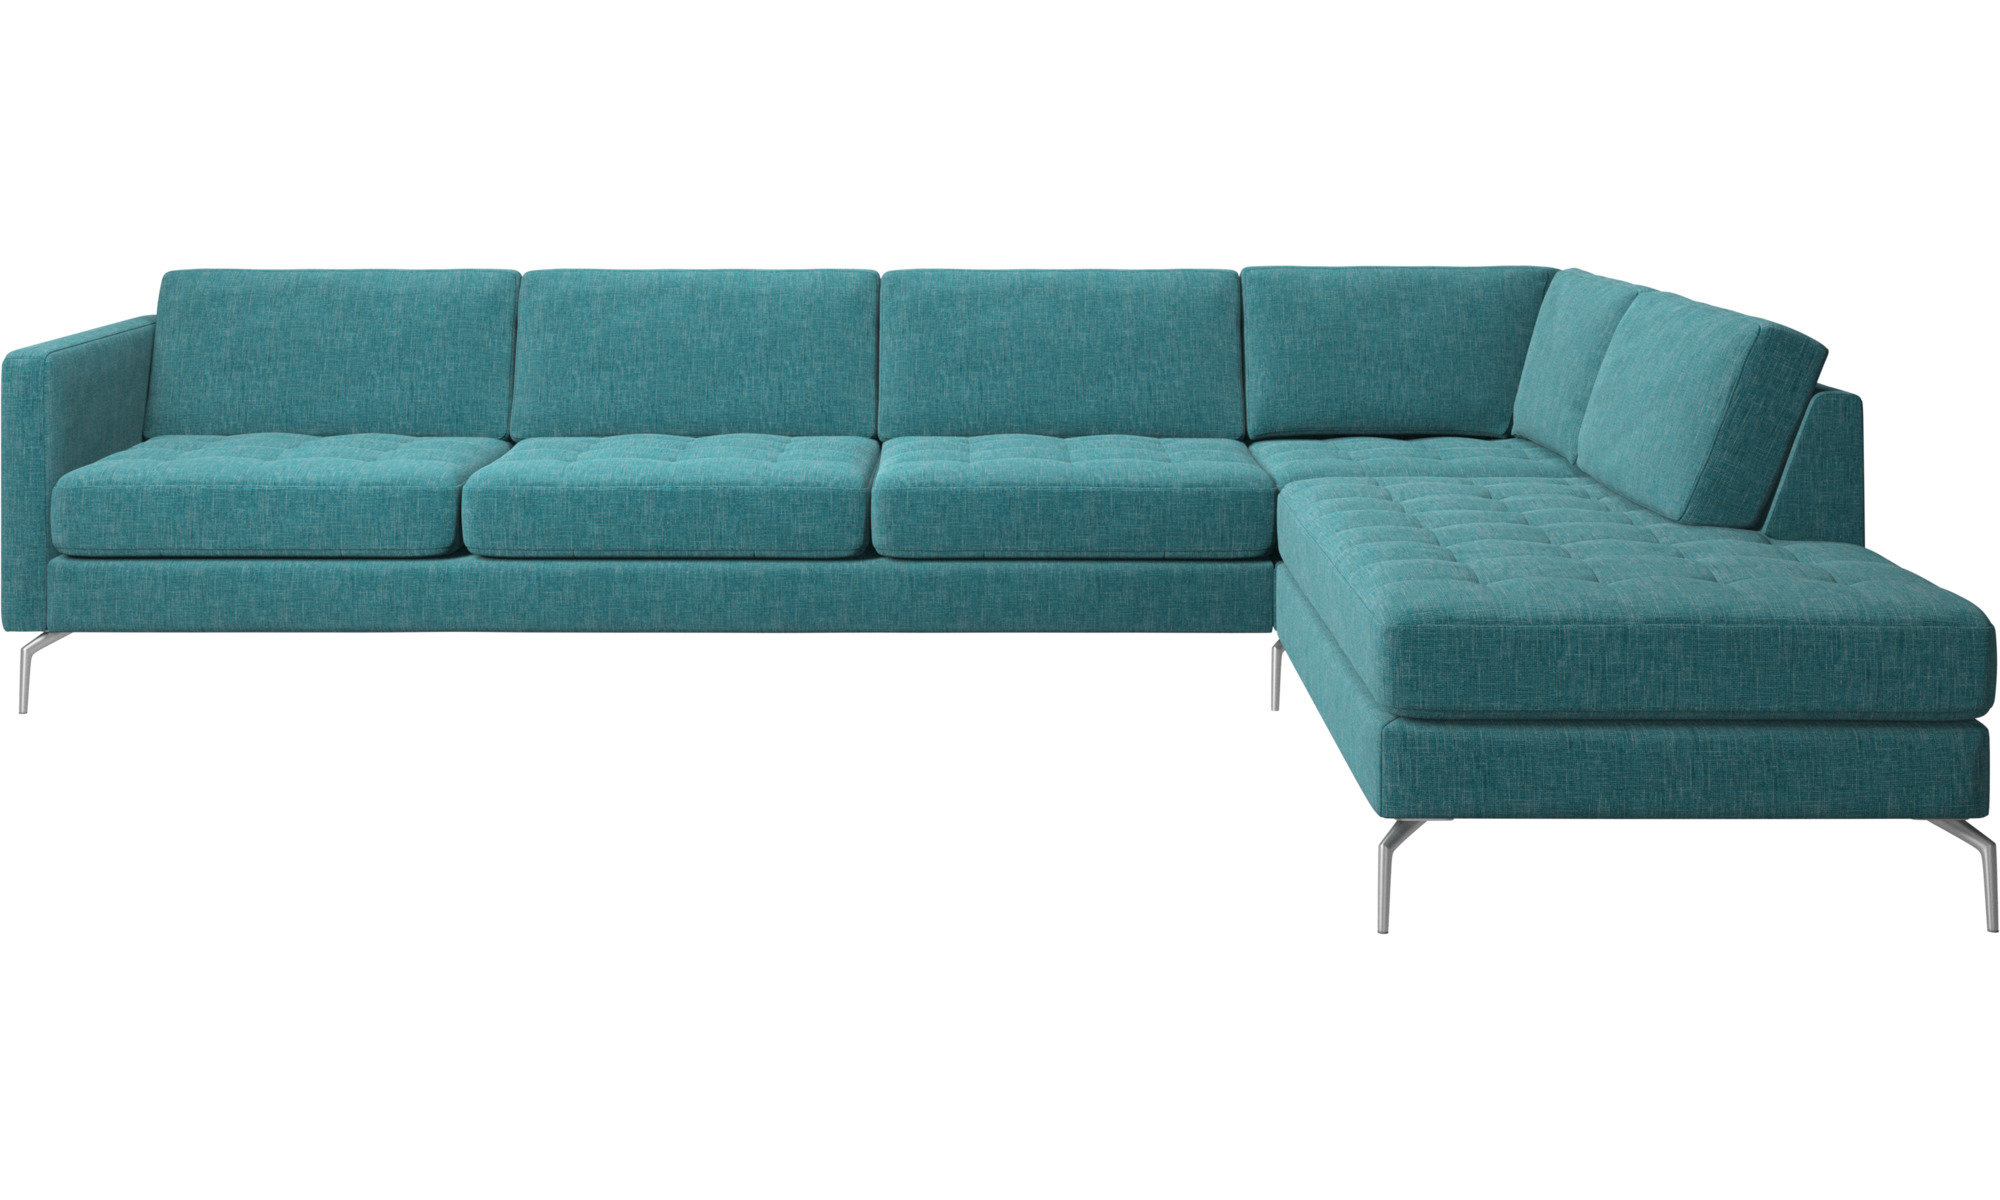 Sofas With Open End Osaka Corner Sofa Lounging Unit Tufted Seat Blue